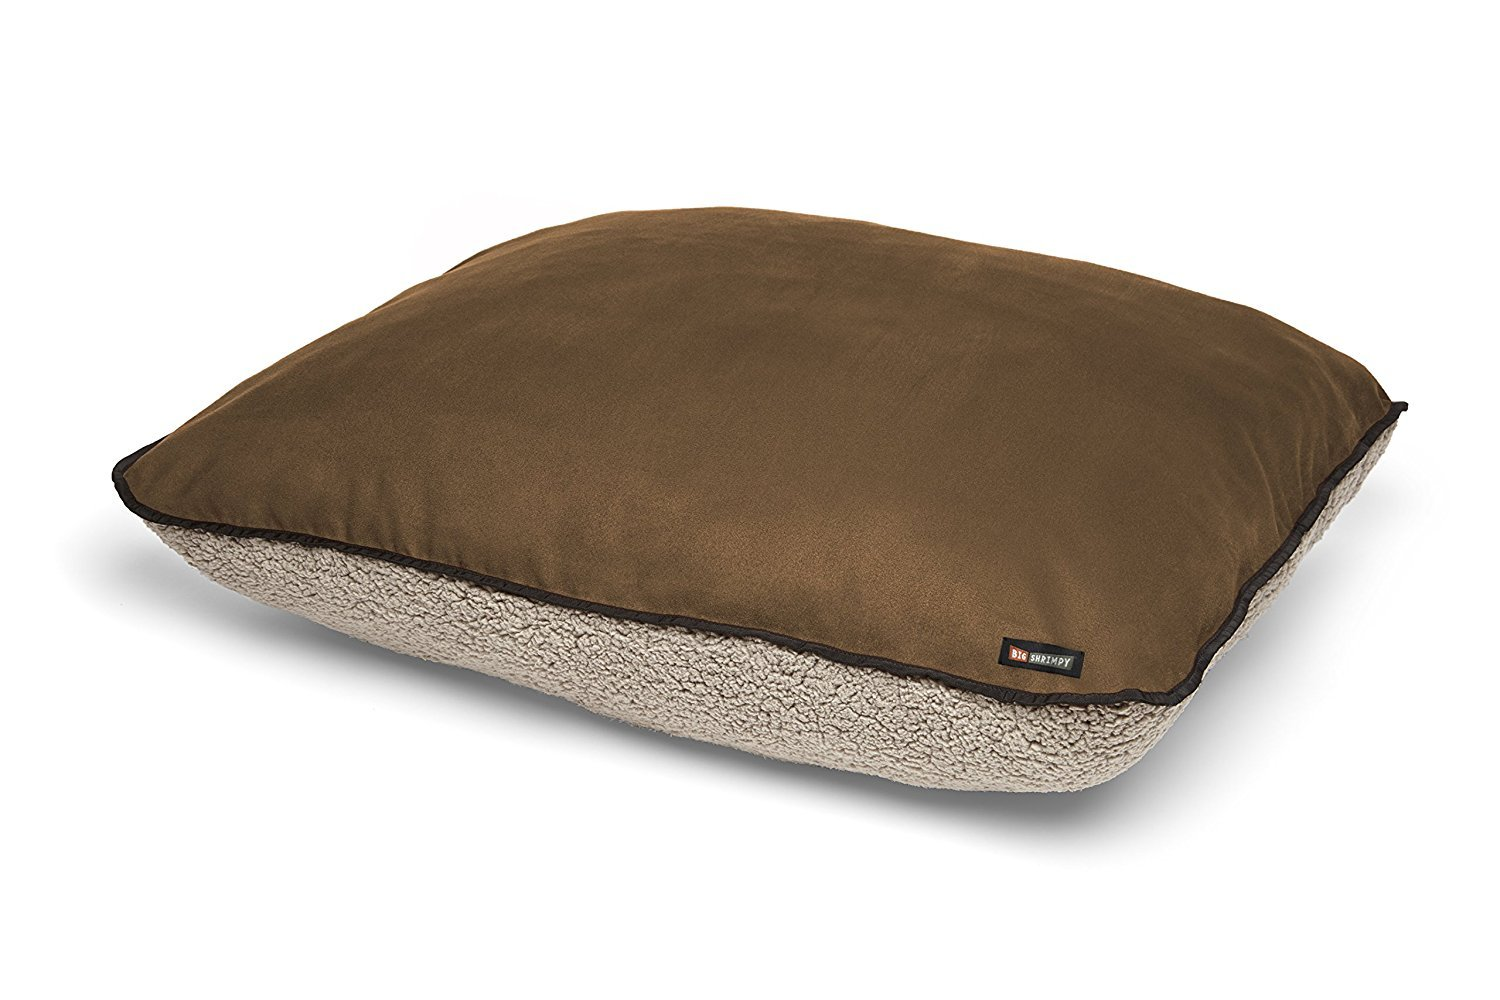 Big Shrimpy Bogo Dog Bed Replacement Cover, Faux Suede and Fleece, Large, Walnut